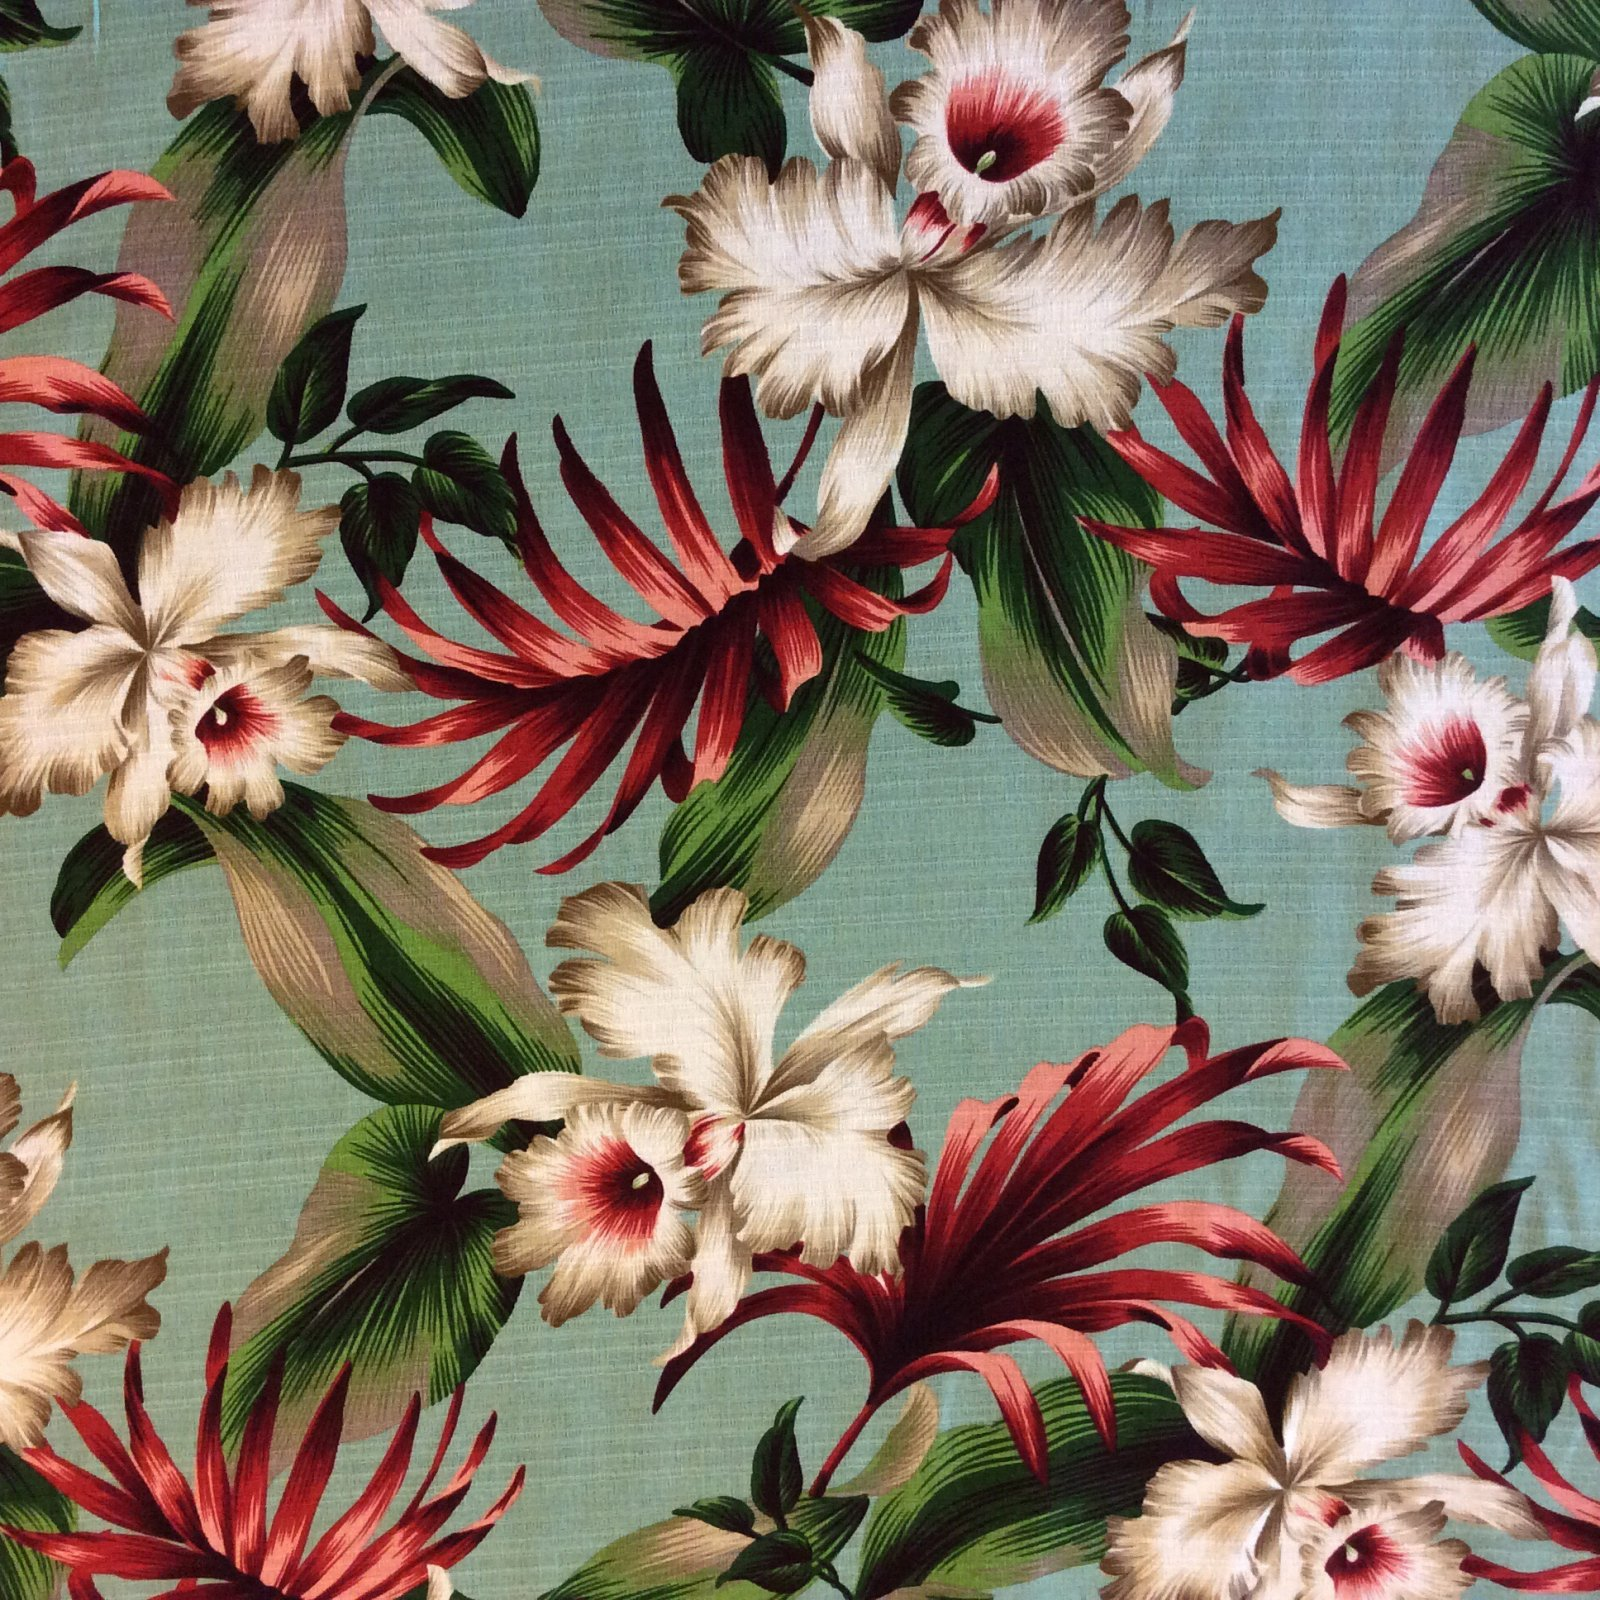 Atomic Barkcloth Style Palm Flower Tropical Tiki Bar Luau Cotton Dobby Fabric Surf Style Lanai HTP020